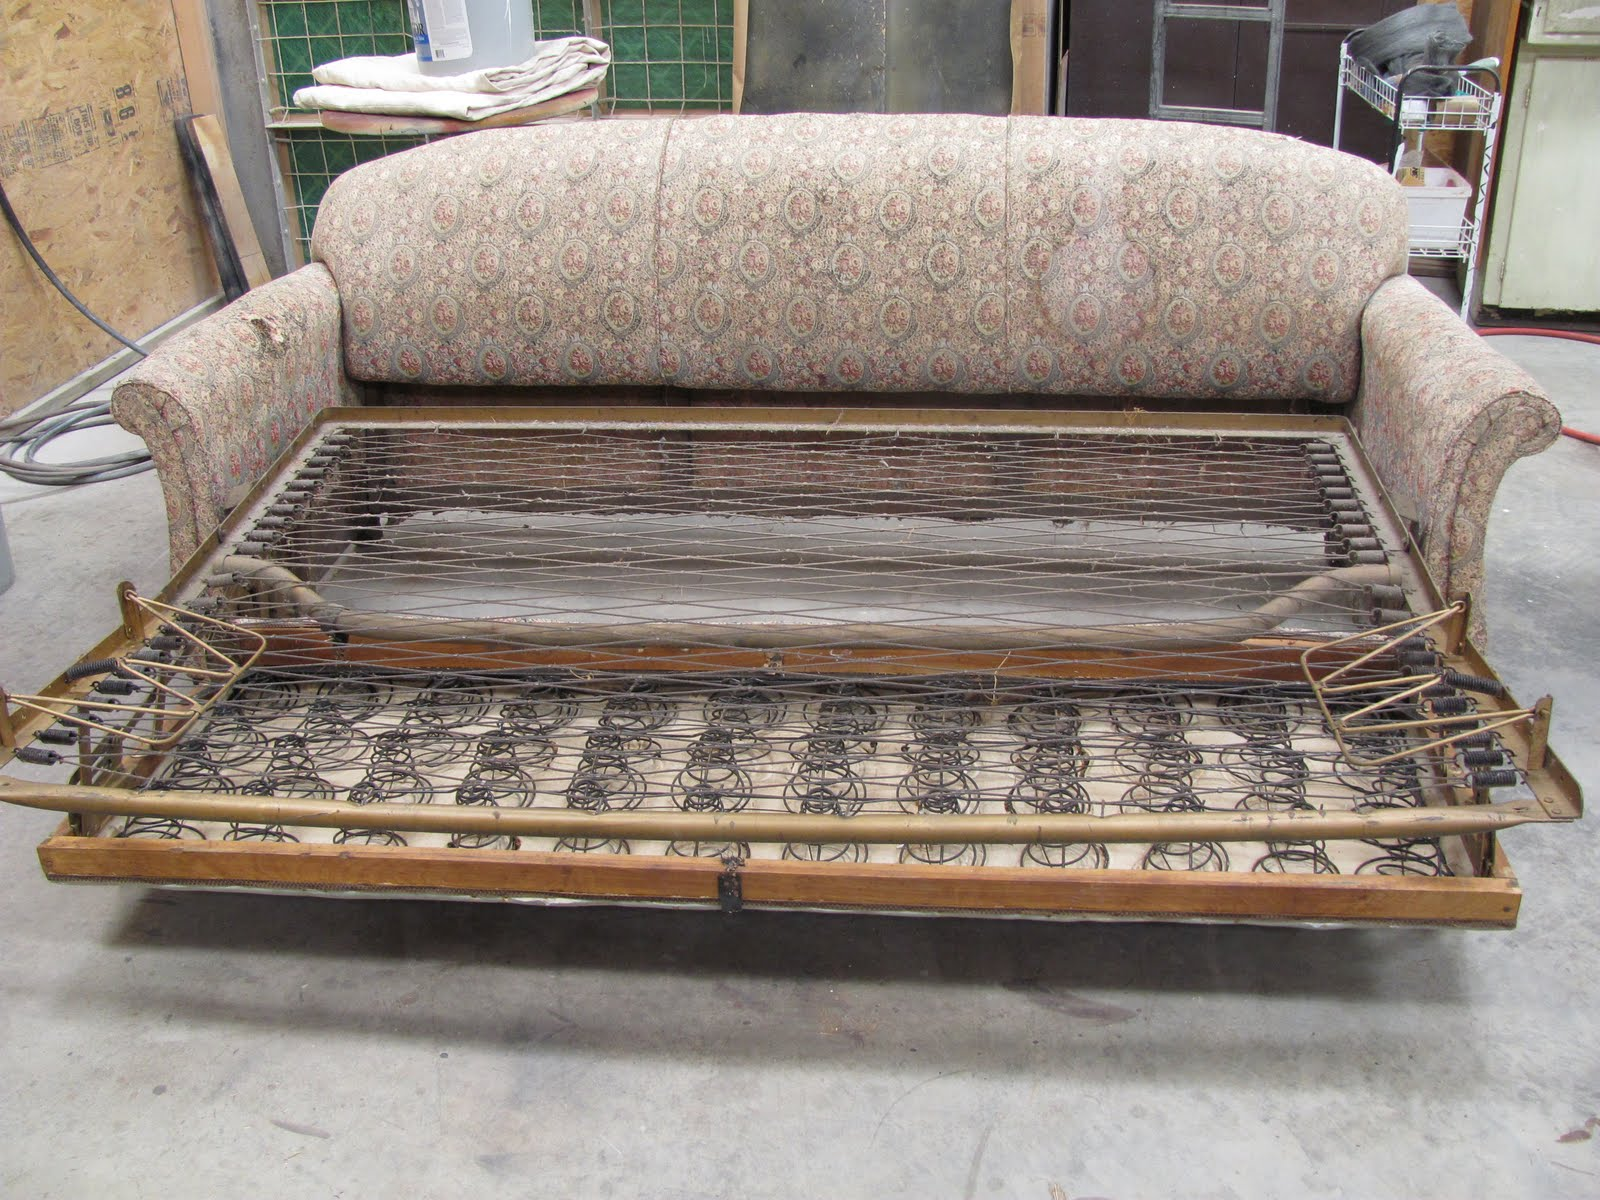 repair sofa wood frame goose down singapore thomas nelson furniture restoration antique sleeper